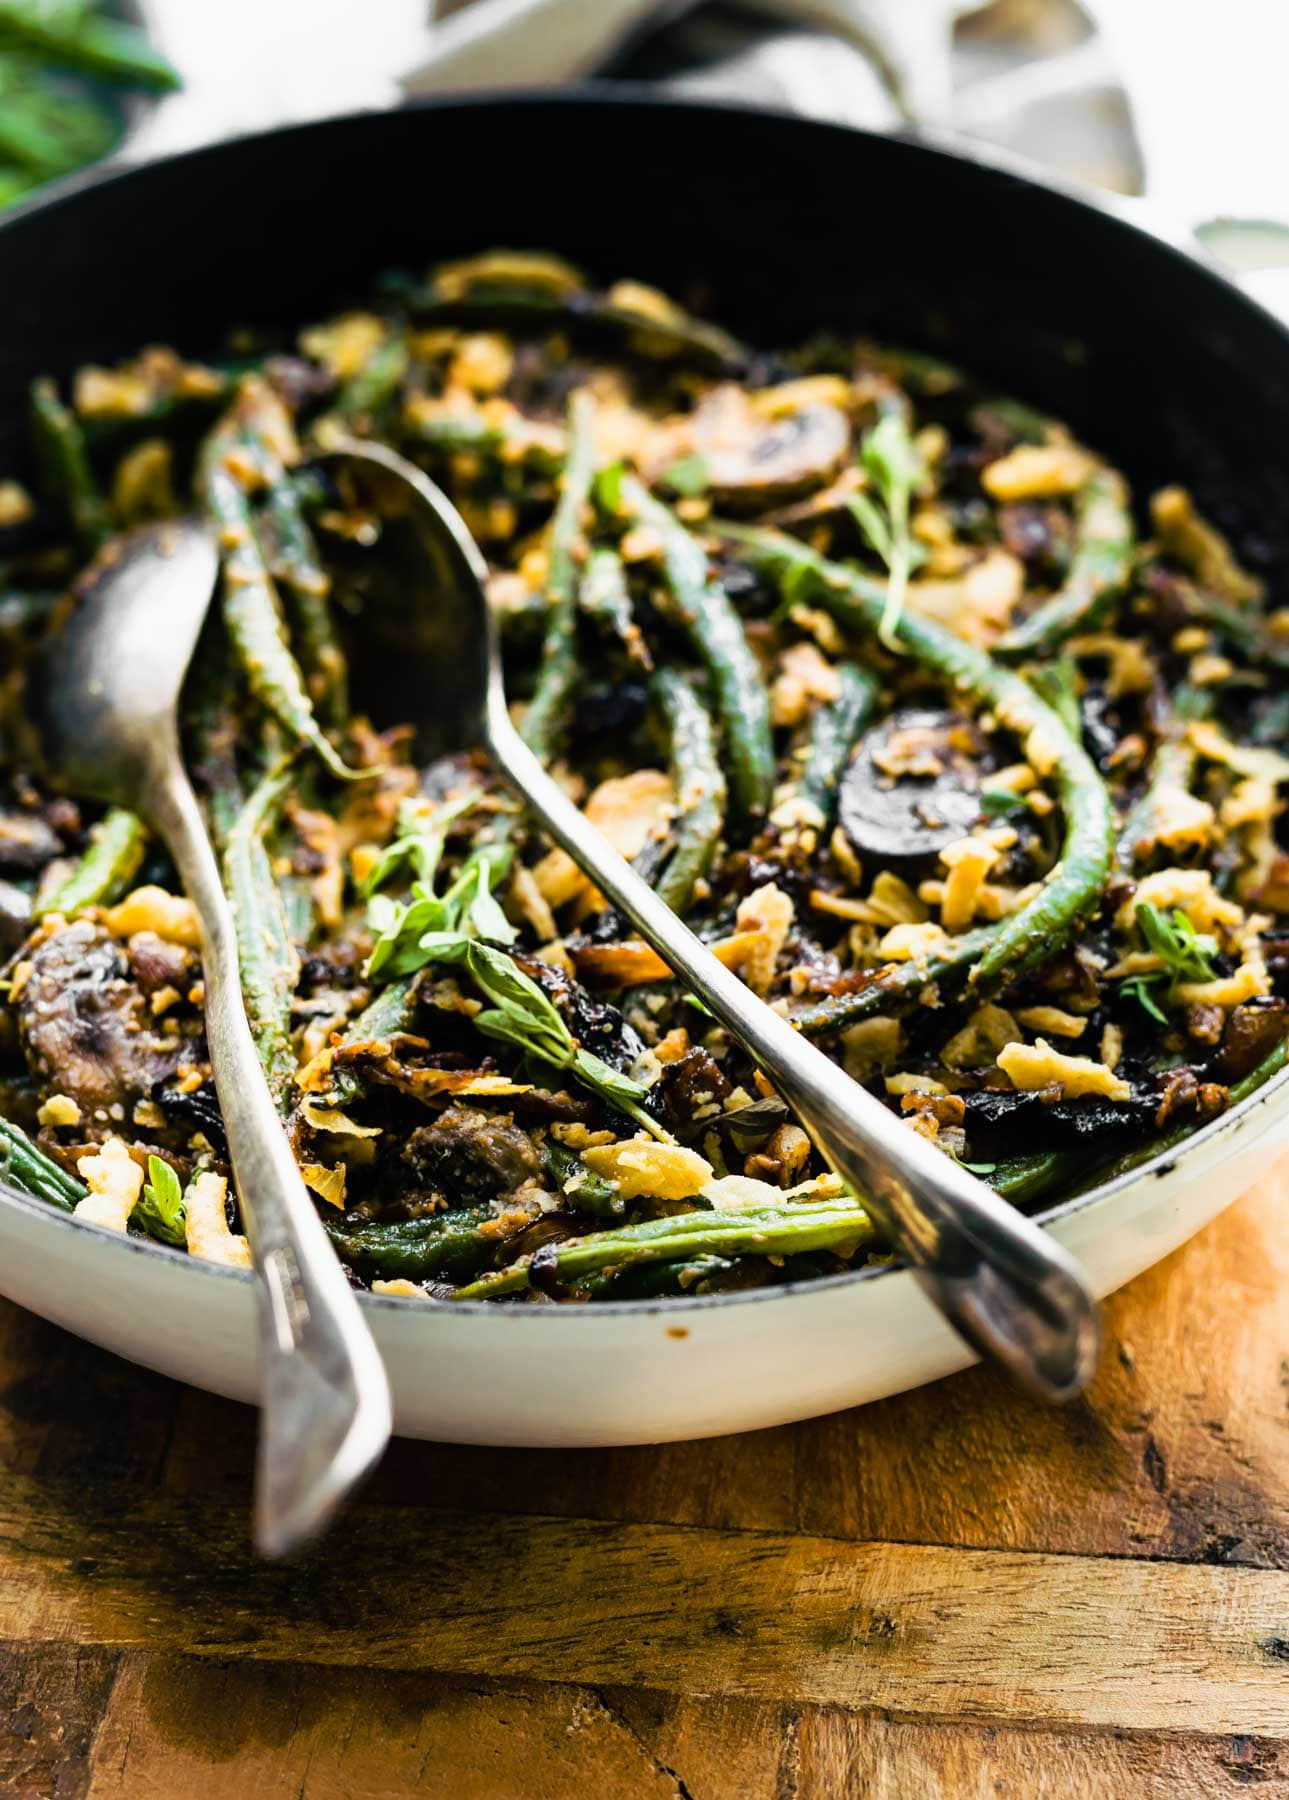 serving homemade vegan green bean casserole from a skillet